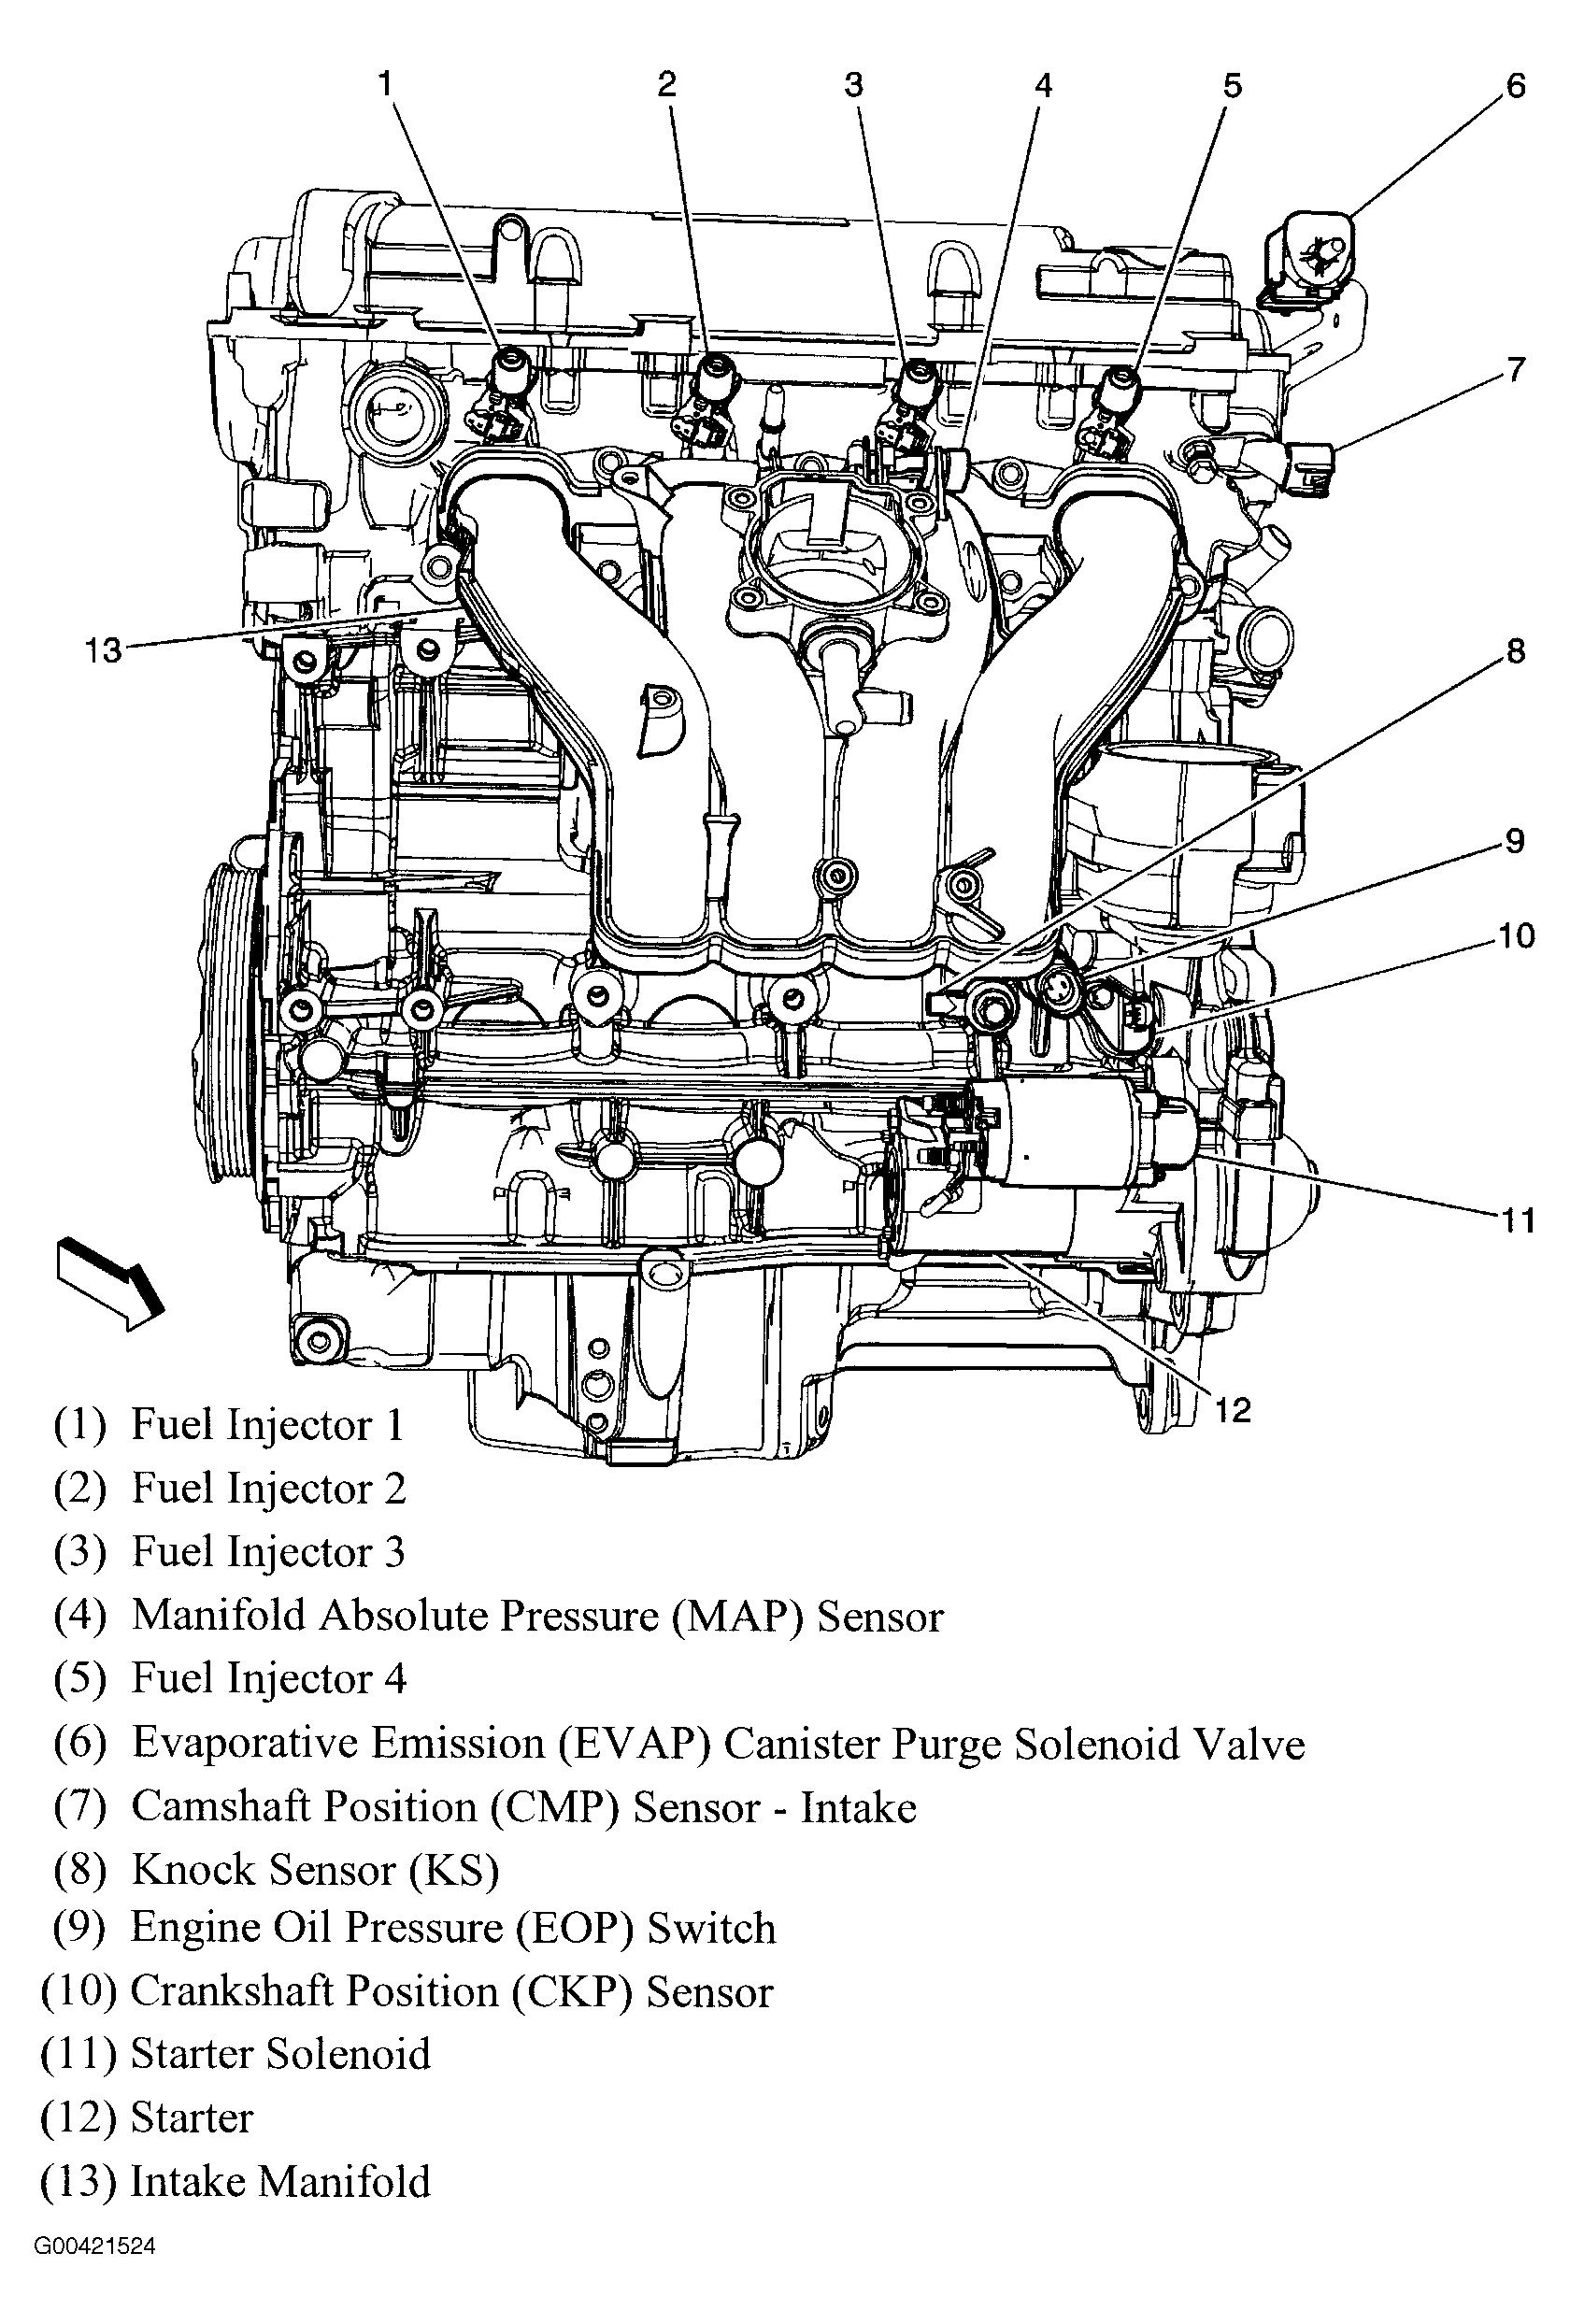 T2874573 Need rear suspension diagram 1999 furthermore 32xaj Starter Relay Located 96 Grand Prix Witha as well 97 Pontiac Sunfire Engine Diagram Html moreover 624ei Oldsmobile Cutlass Ciera S 93 Olds Kicks Bucks When Slowing additionally Discussion D608 ds527417. on 1996 pontiac sunfire wiring diagram